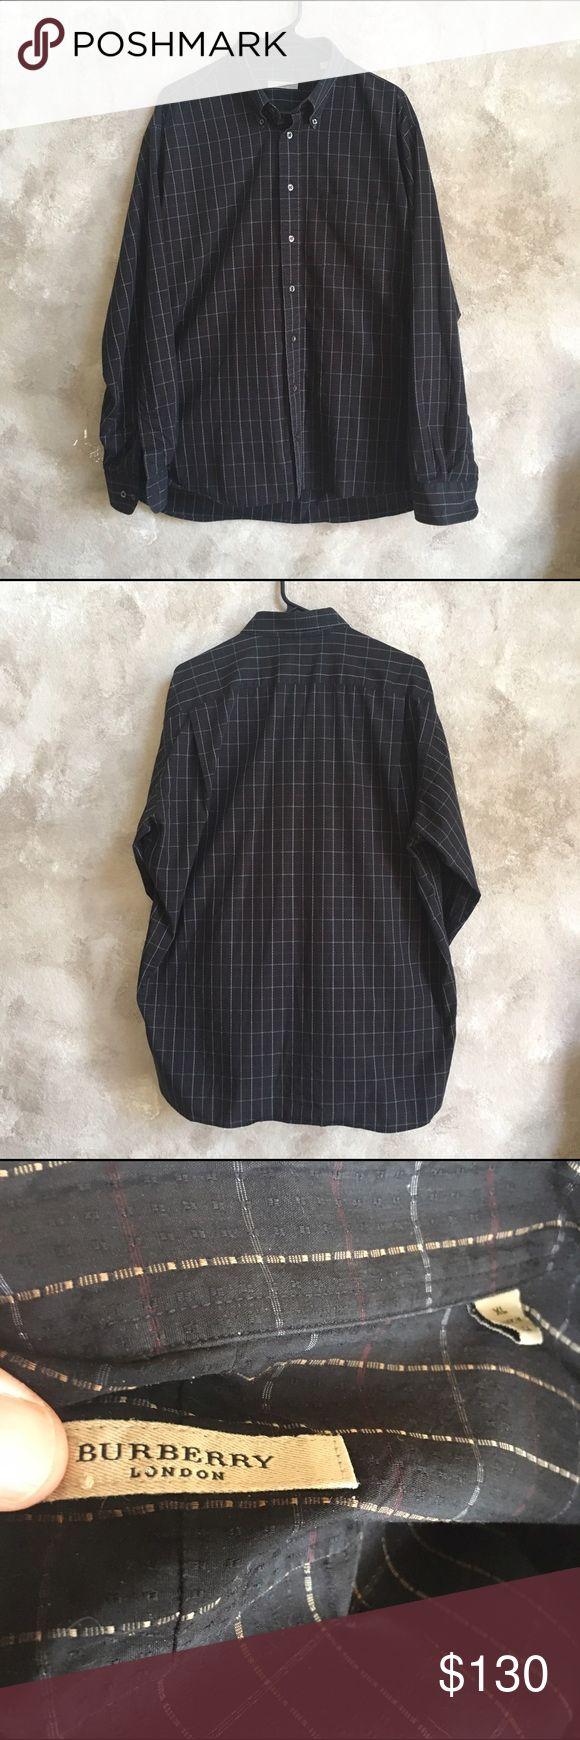 Burberry men's button down shirt XL This shirt is in great condition. No holes or snags. Looks new! Burberry Shirts Casual Button Down Shirts